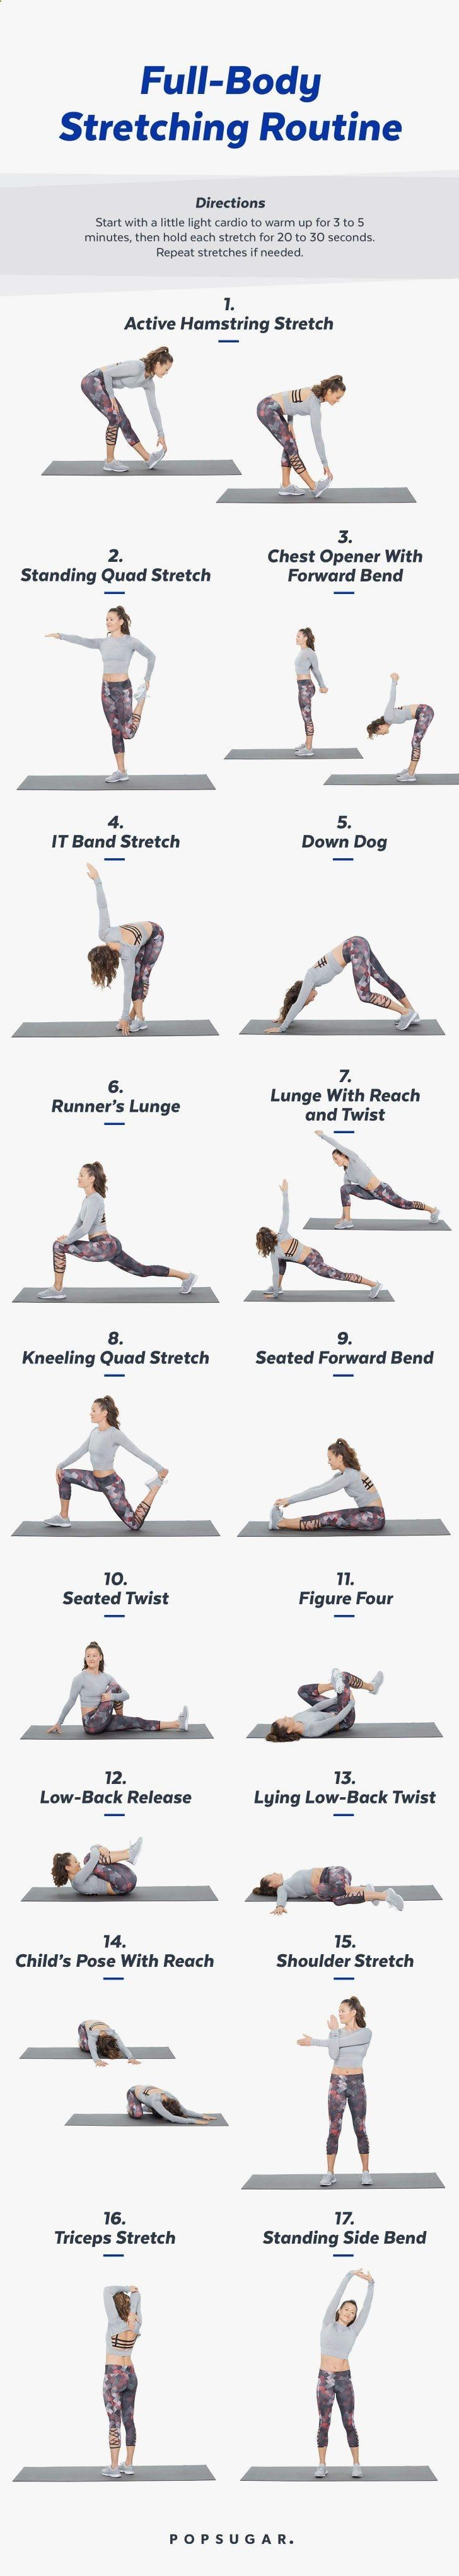 Easy Yoga Workout - Stretch, Recover, Relax: This Is How to Handle a Rest Day Get your sexiest body ever without,crunches,cardio,or ever setting foot in a gym